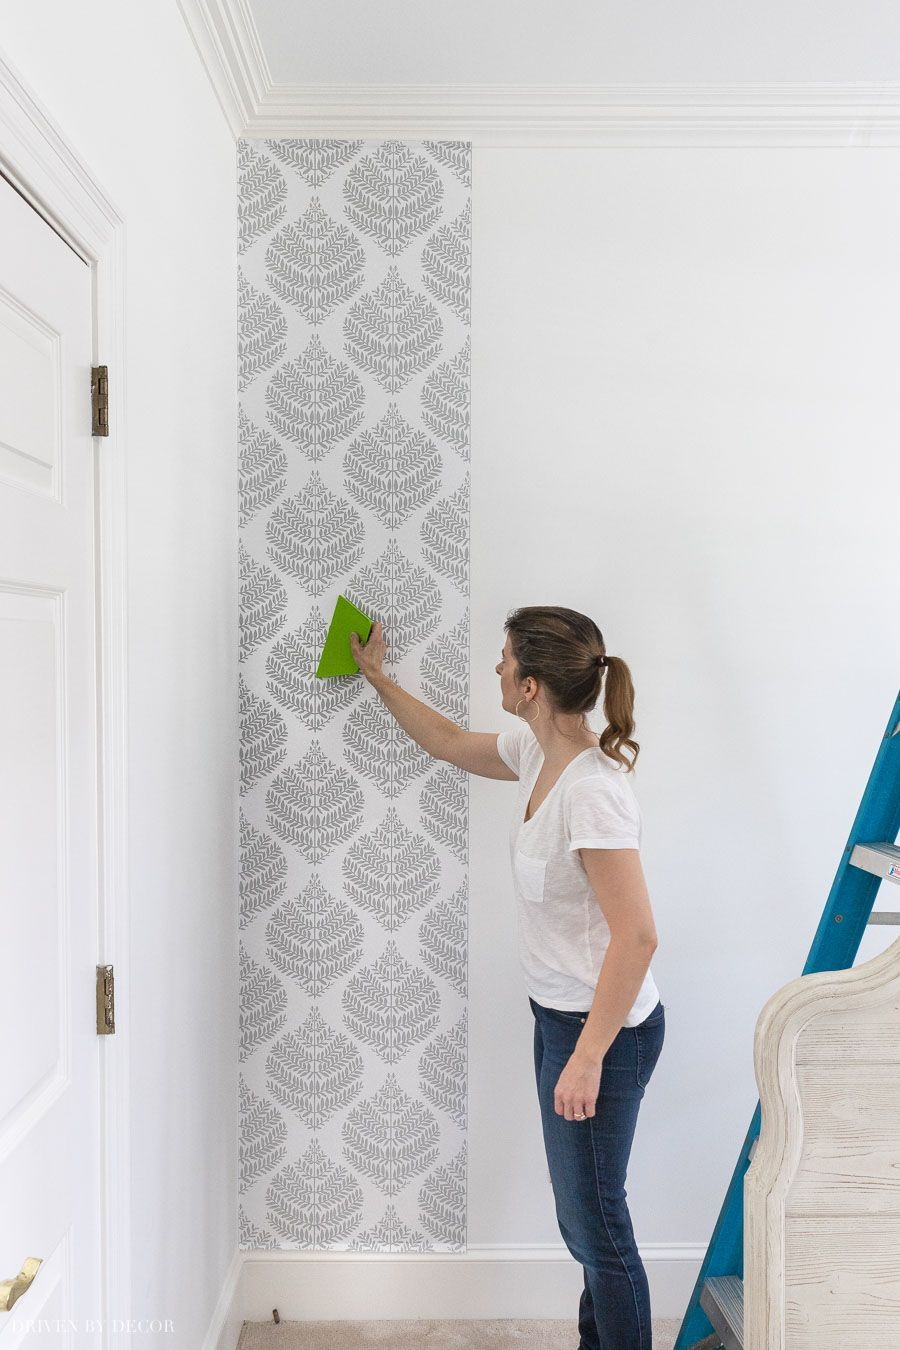 Peel Stick Wallpaper How My First Project With It Turned Out Your Questions Answered Driven By Decor Driven By Decor Peel And Stick Wallpaper White Woven Baskets